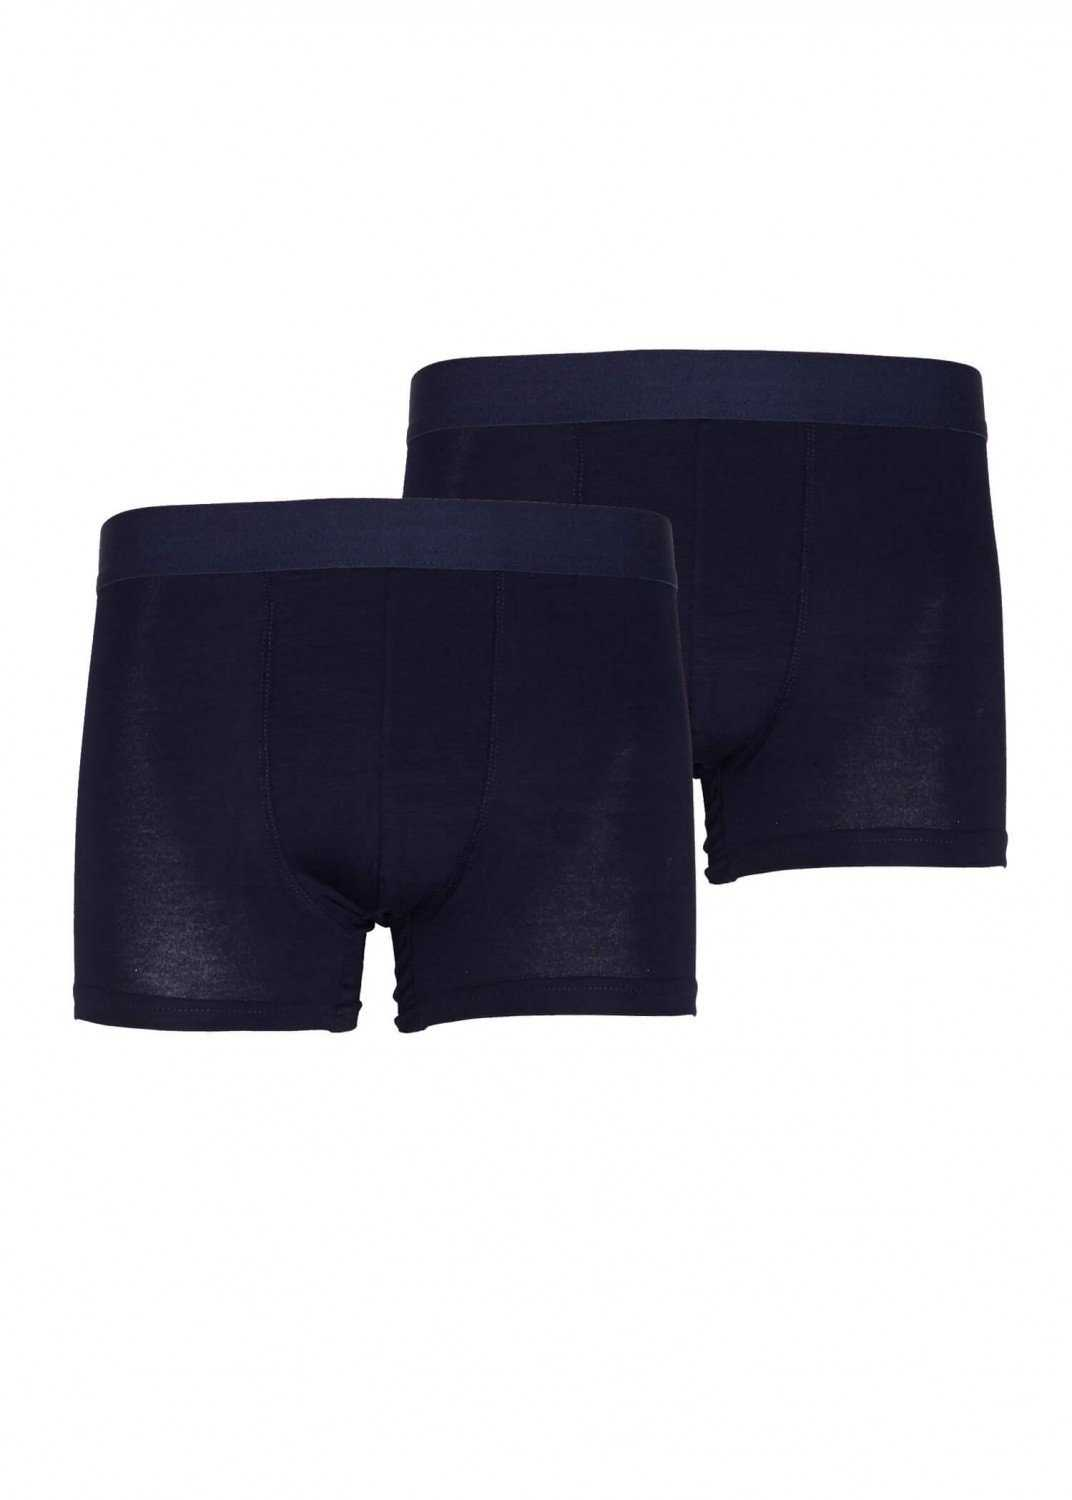 Men's 2 Pairs of Navy Blue Bamboo Boxers - eco-wear-ltd